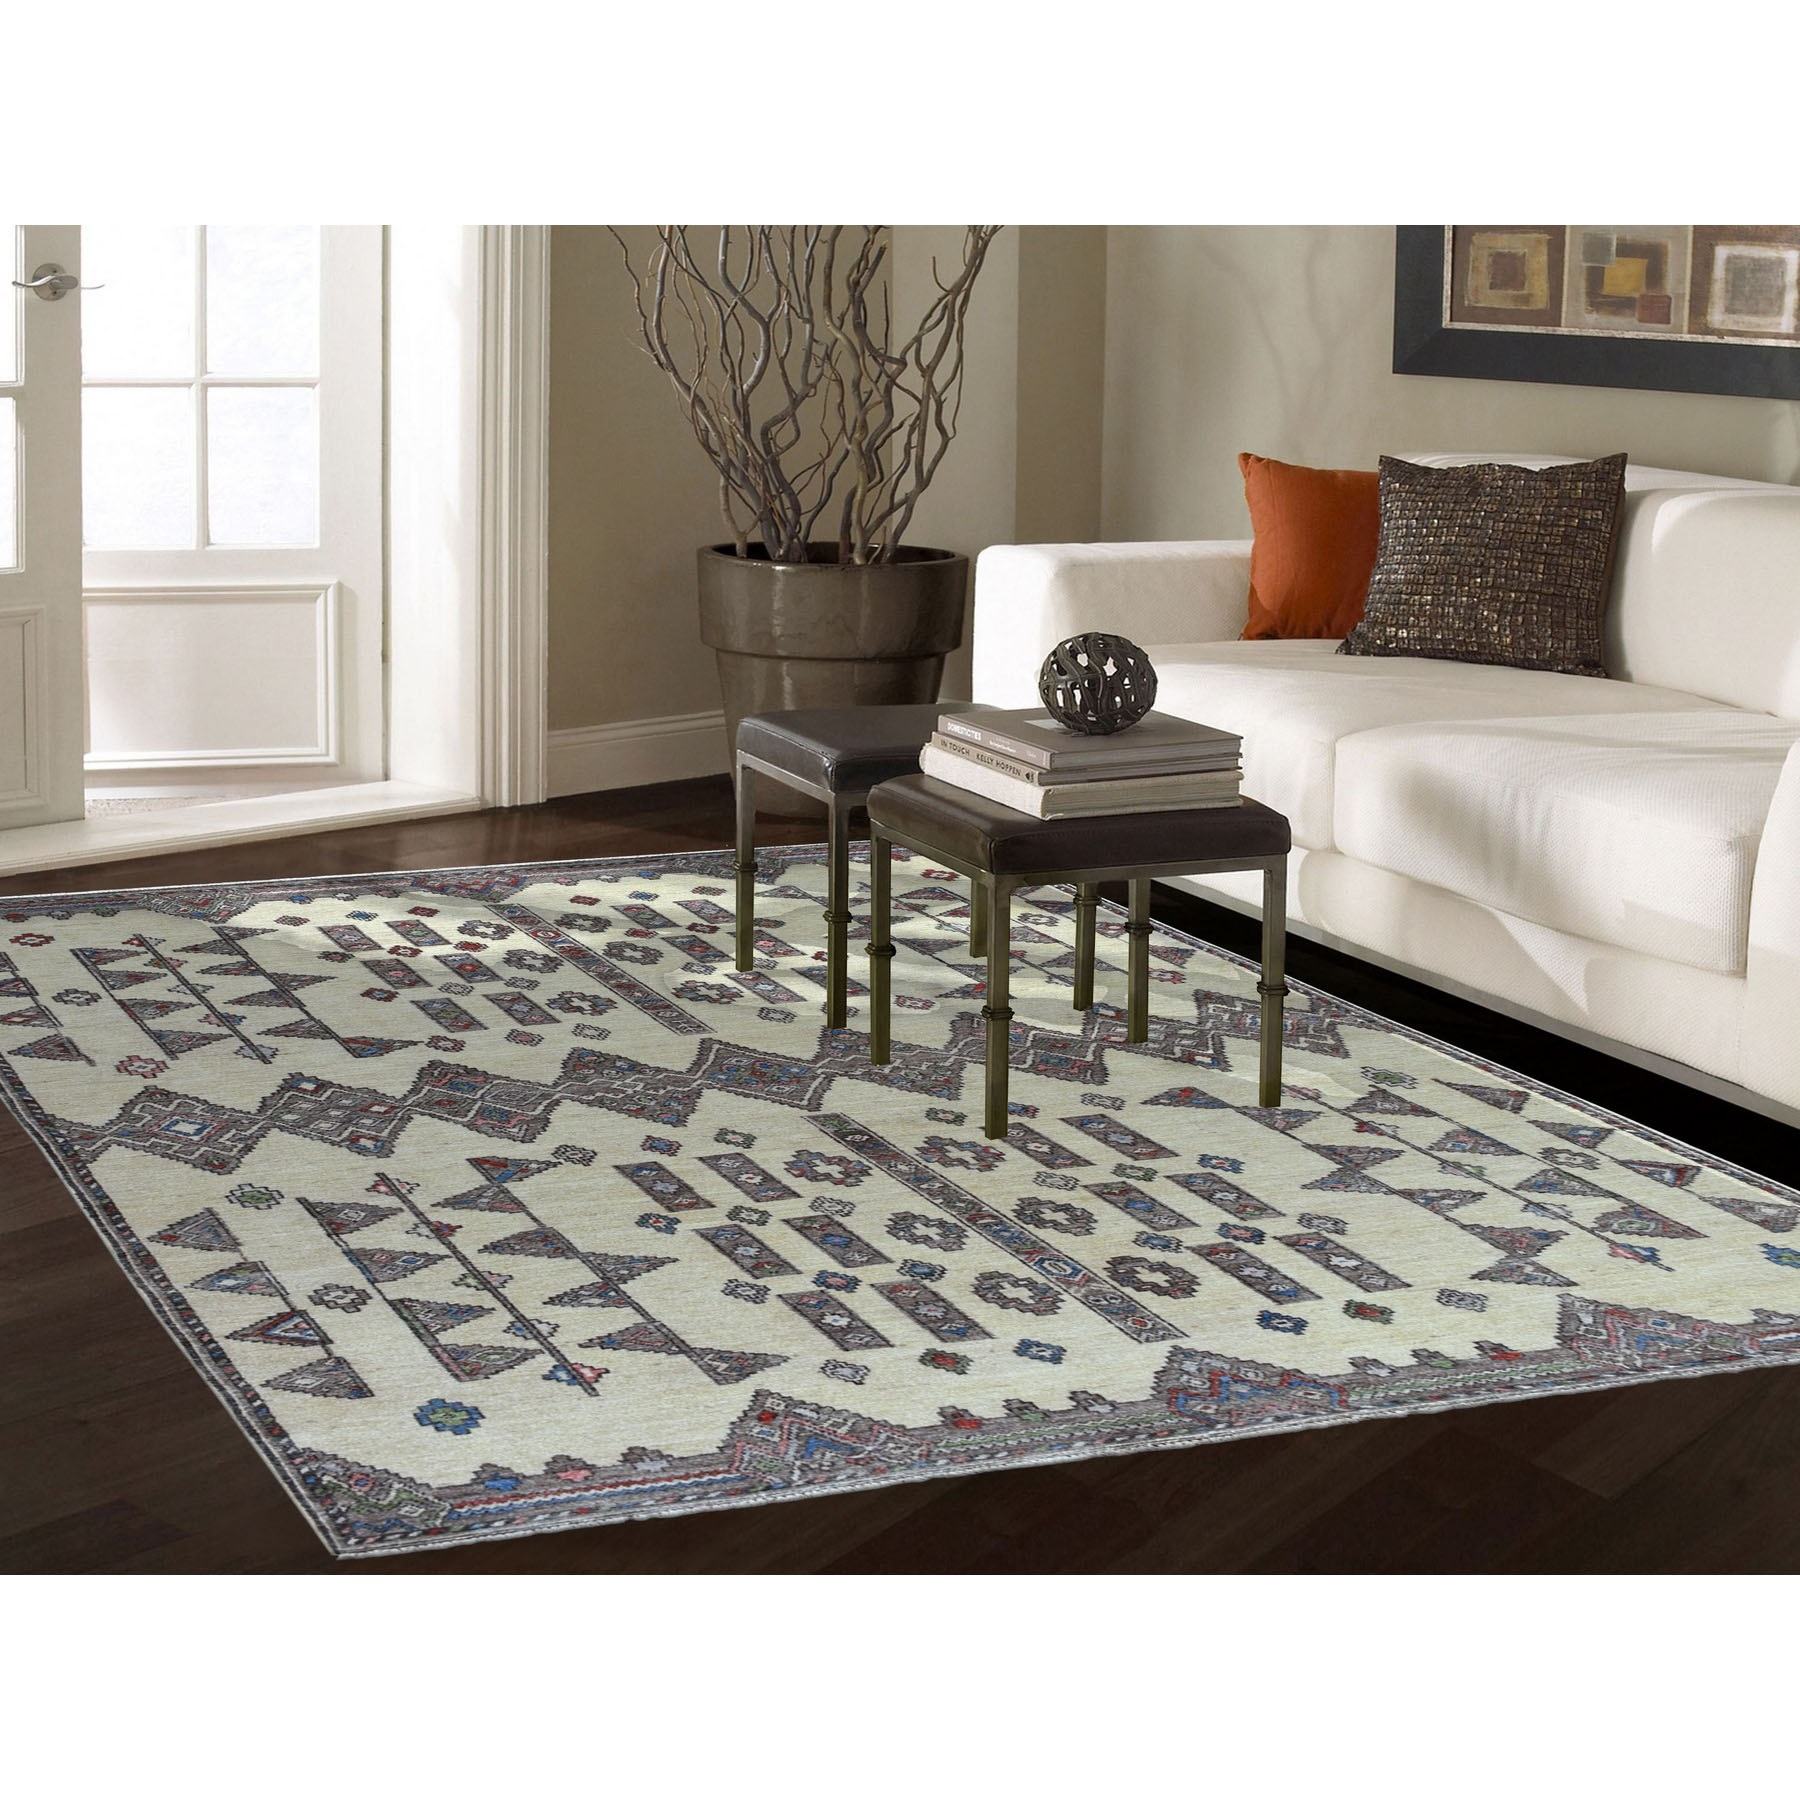 6'x9' Ivory Peshawar With Berber Motifs Inspired With pop Of Color Pure Wool Oriental Rug